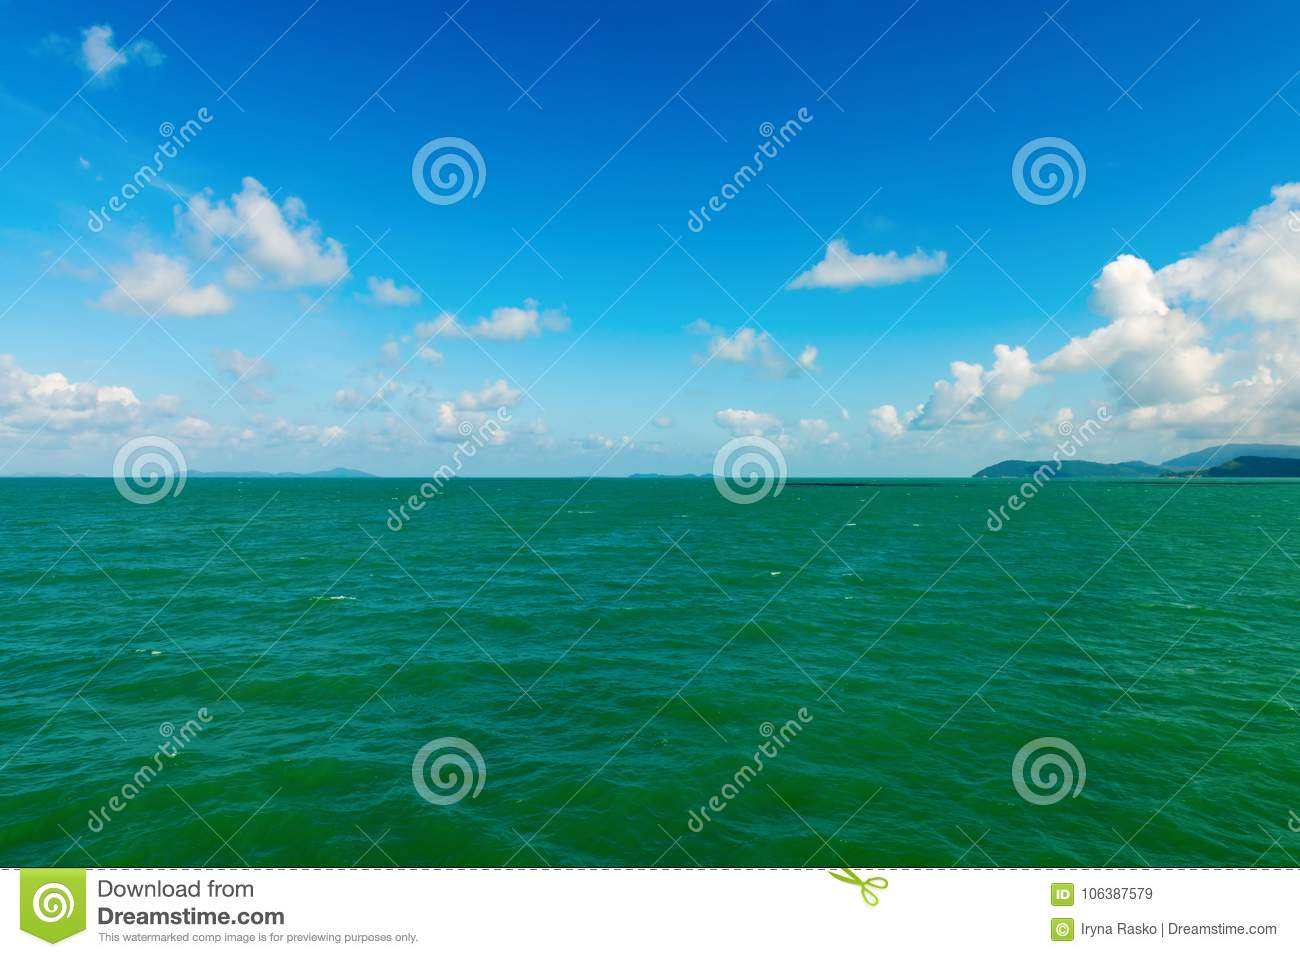 Seascape with green islands on horizon